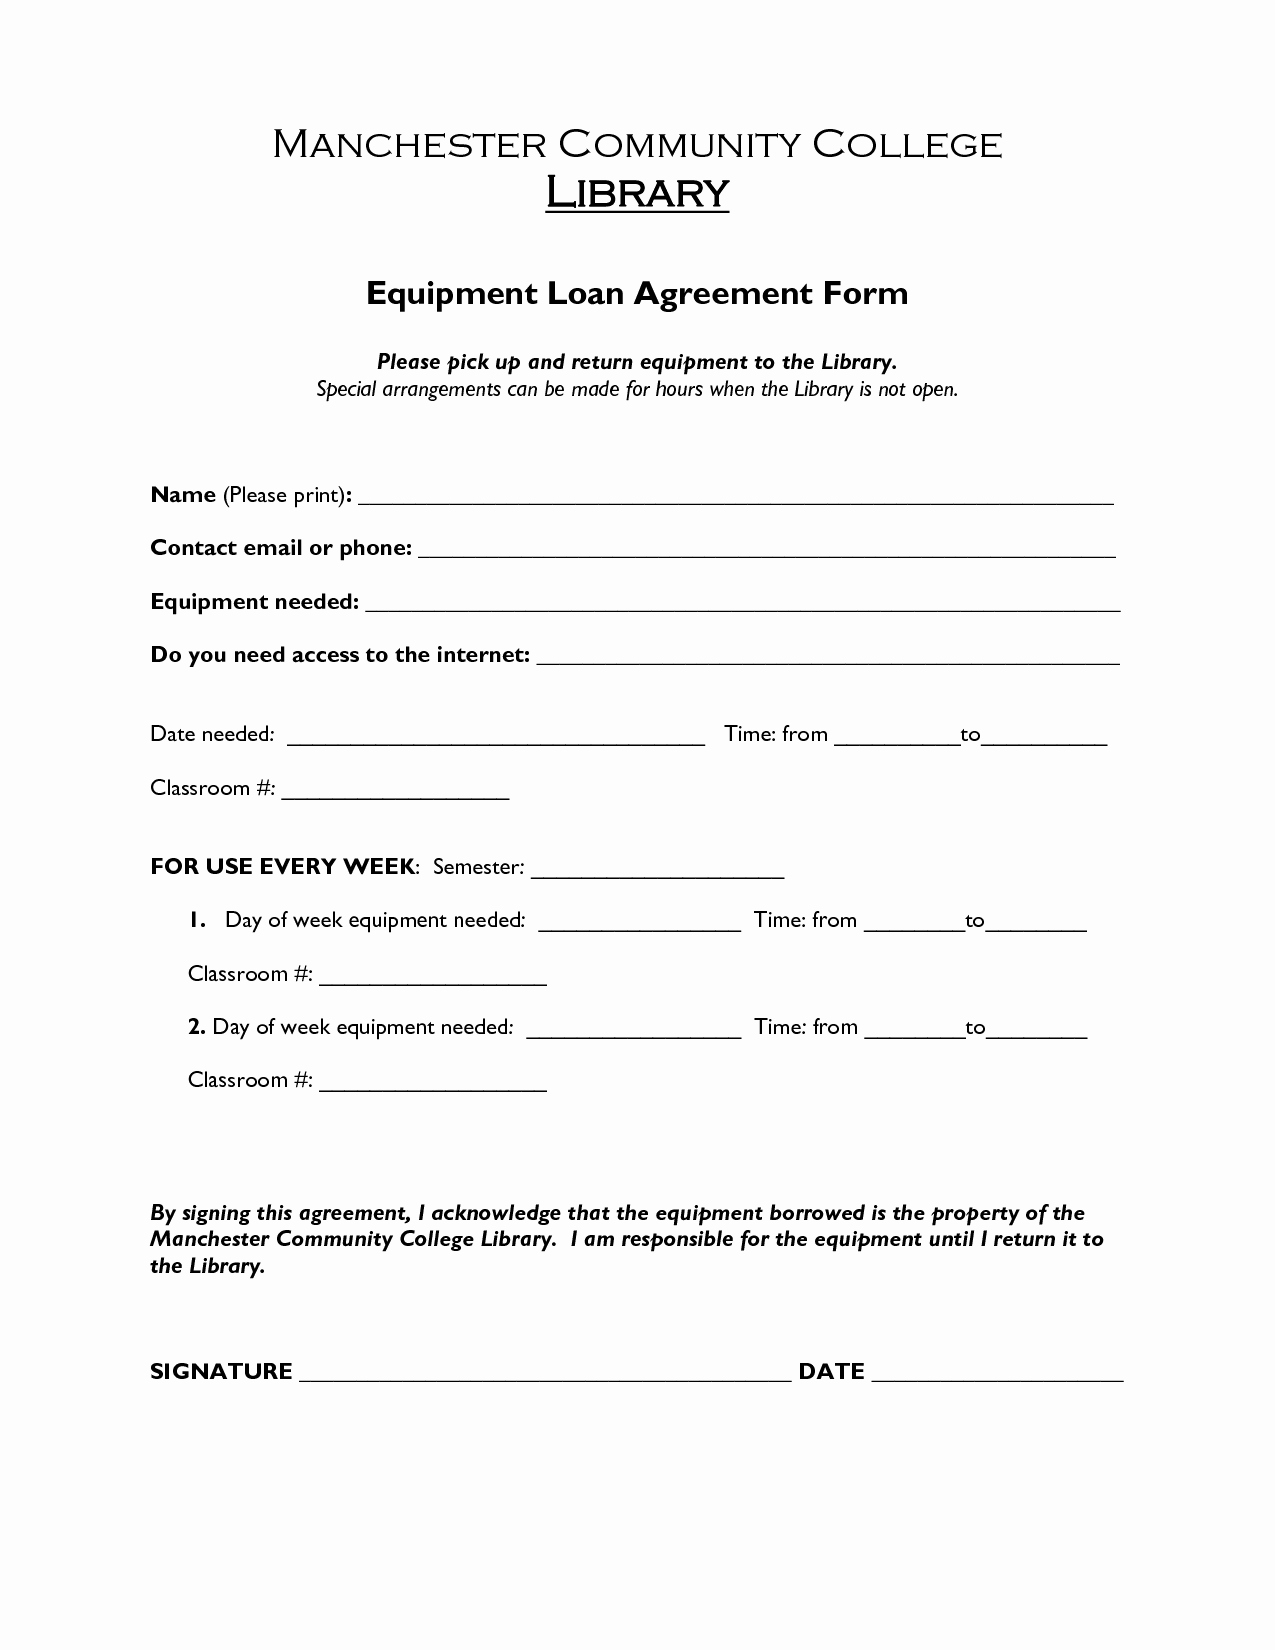 Company Equipment Use and Return Policy Agreement Elegant Printable Sample Loan Agreement form form